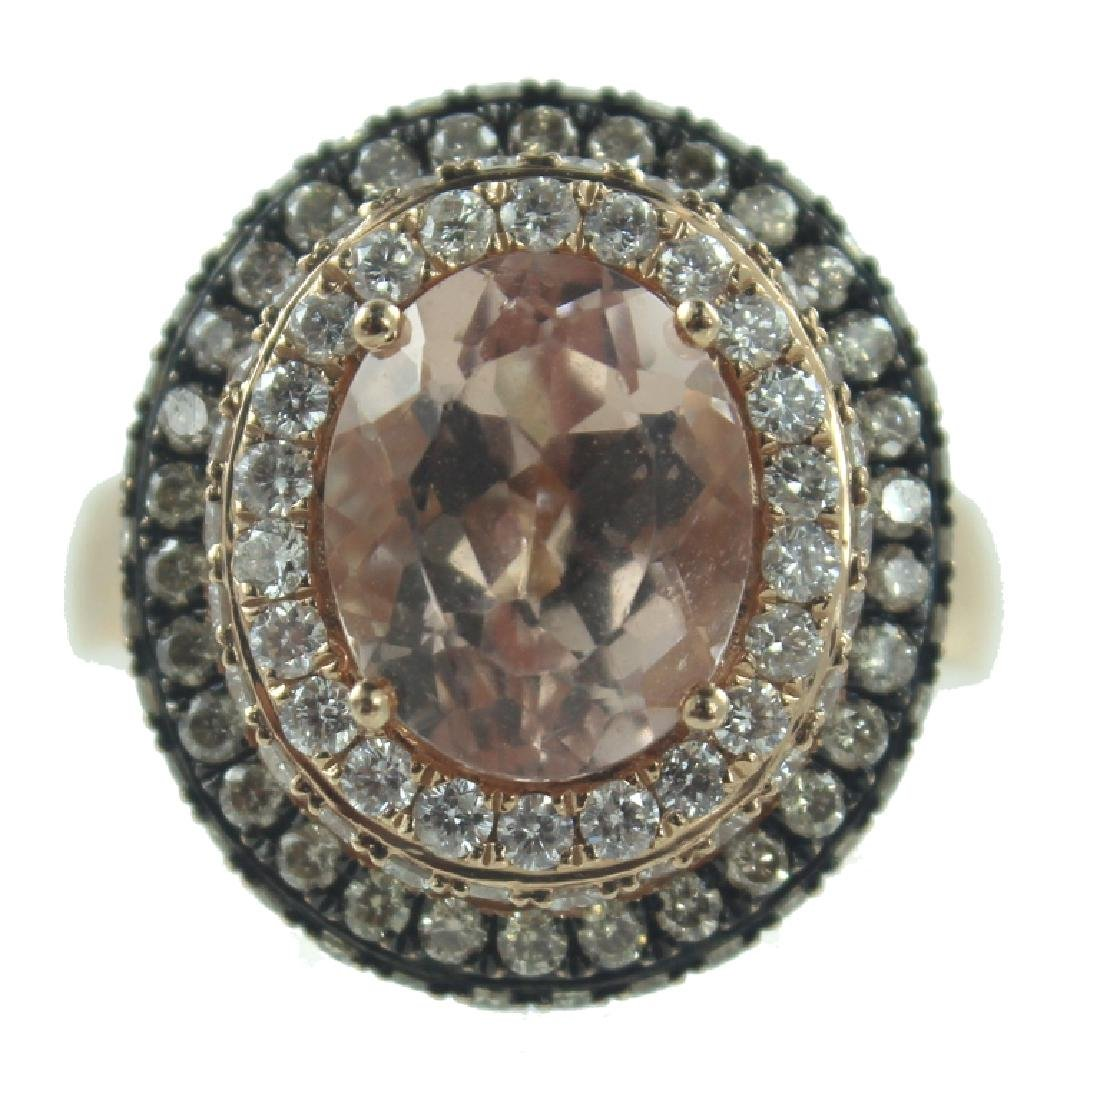 14K MORGANITE & DIAMOND RING